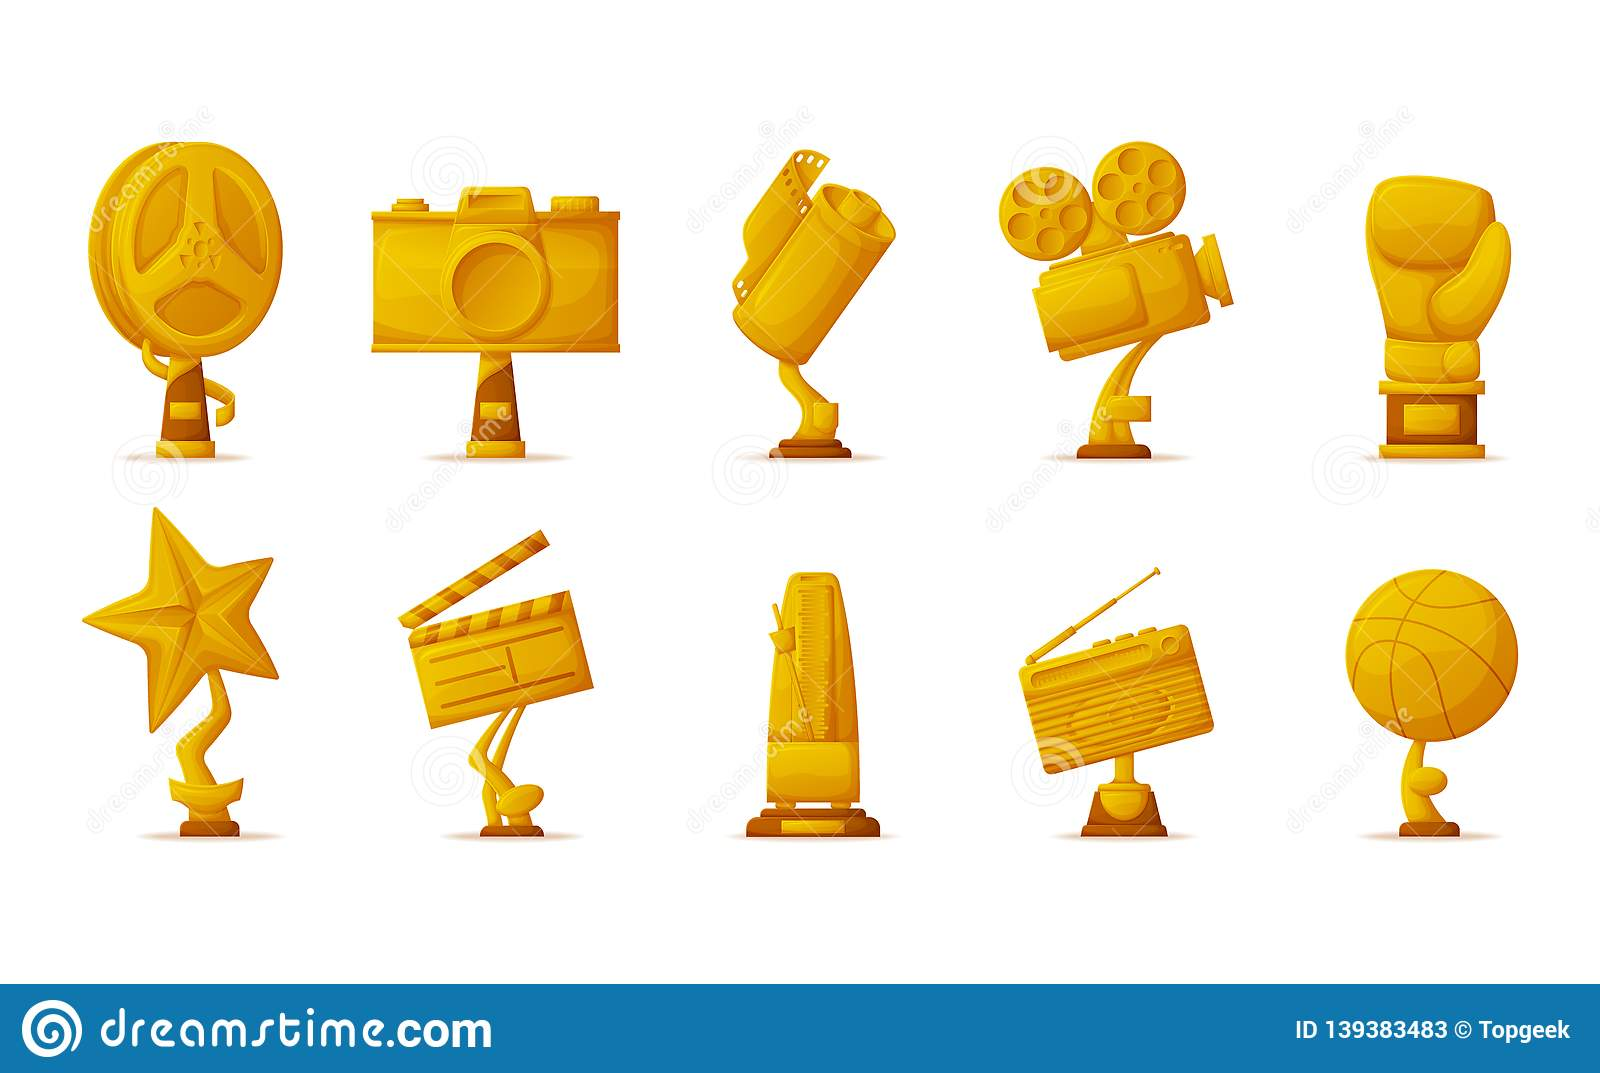 Gold Prize Trophies for Cinema, Music and Sport